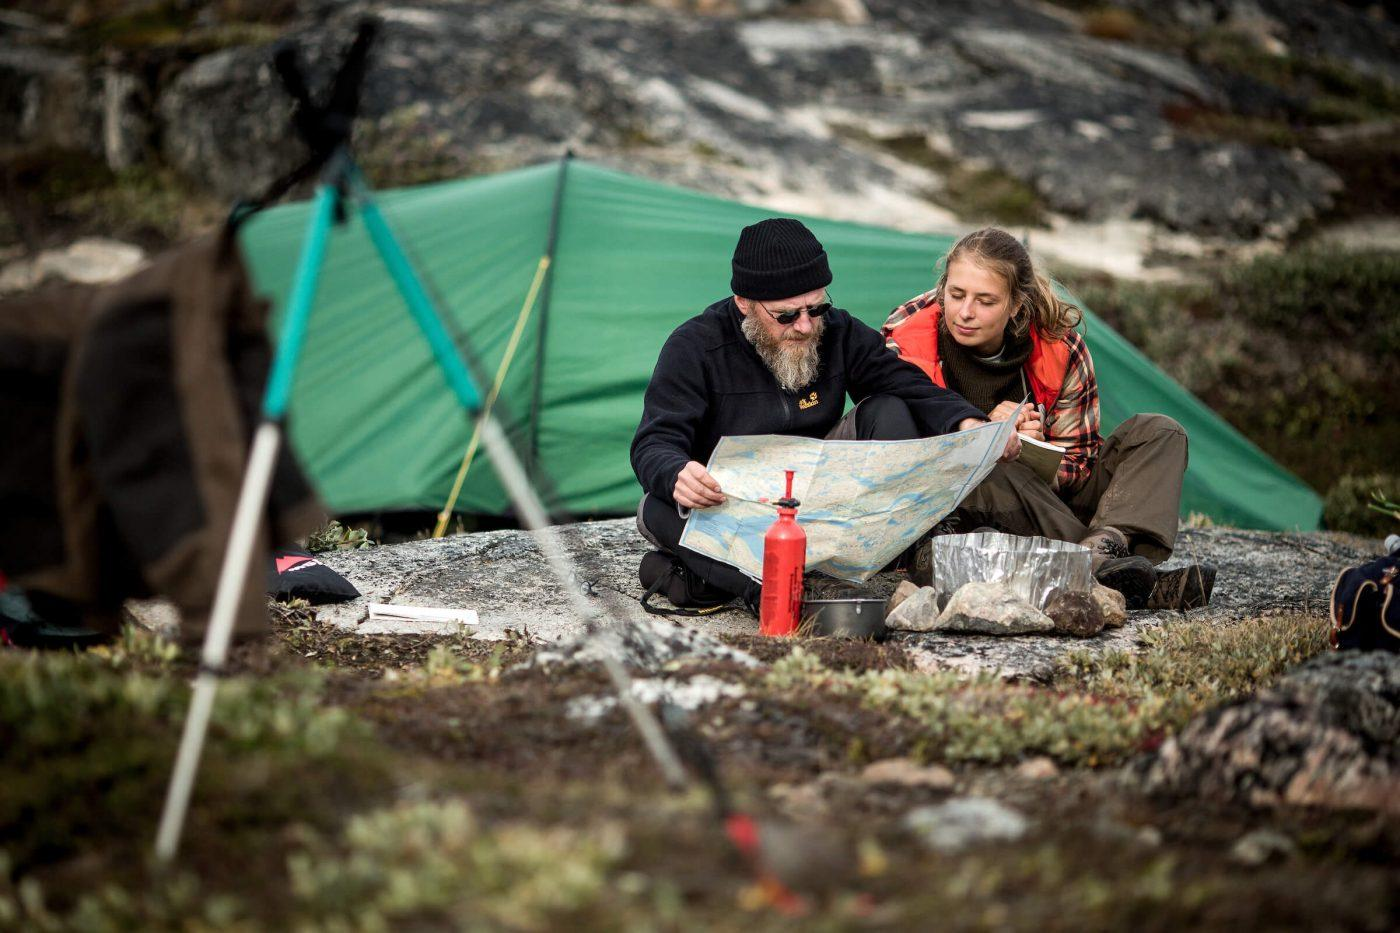 Two hikers at a campsite in Greenland near Ilulissat studying a map. By Mads Pihl